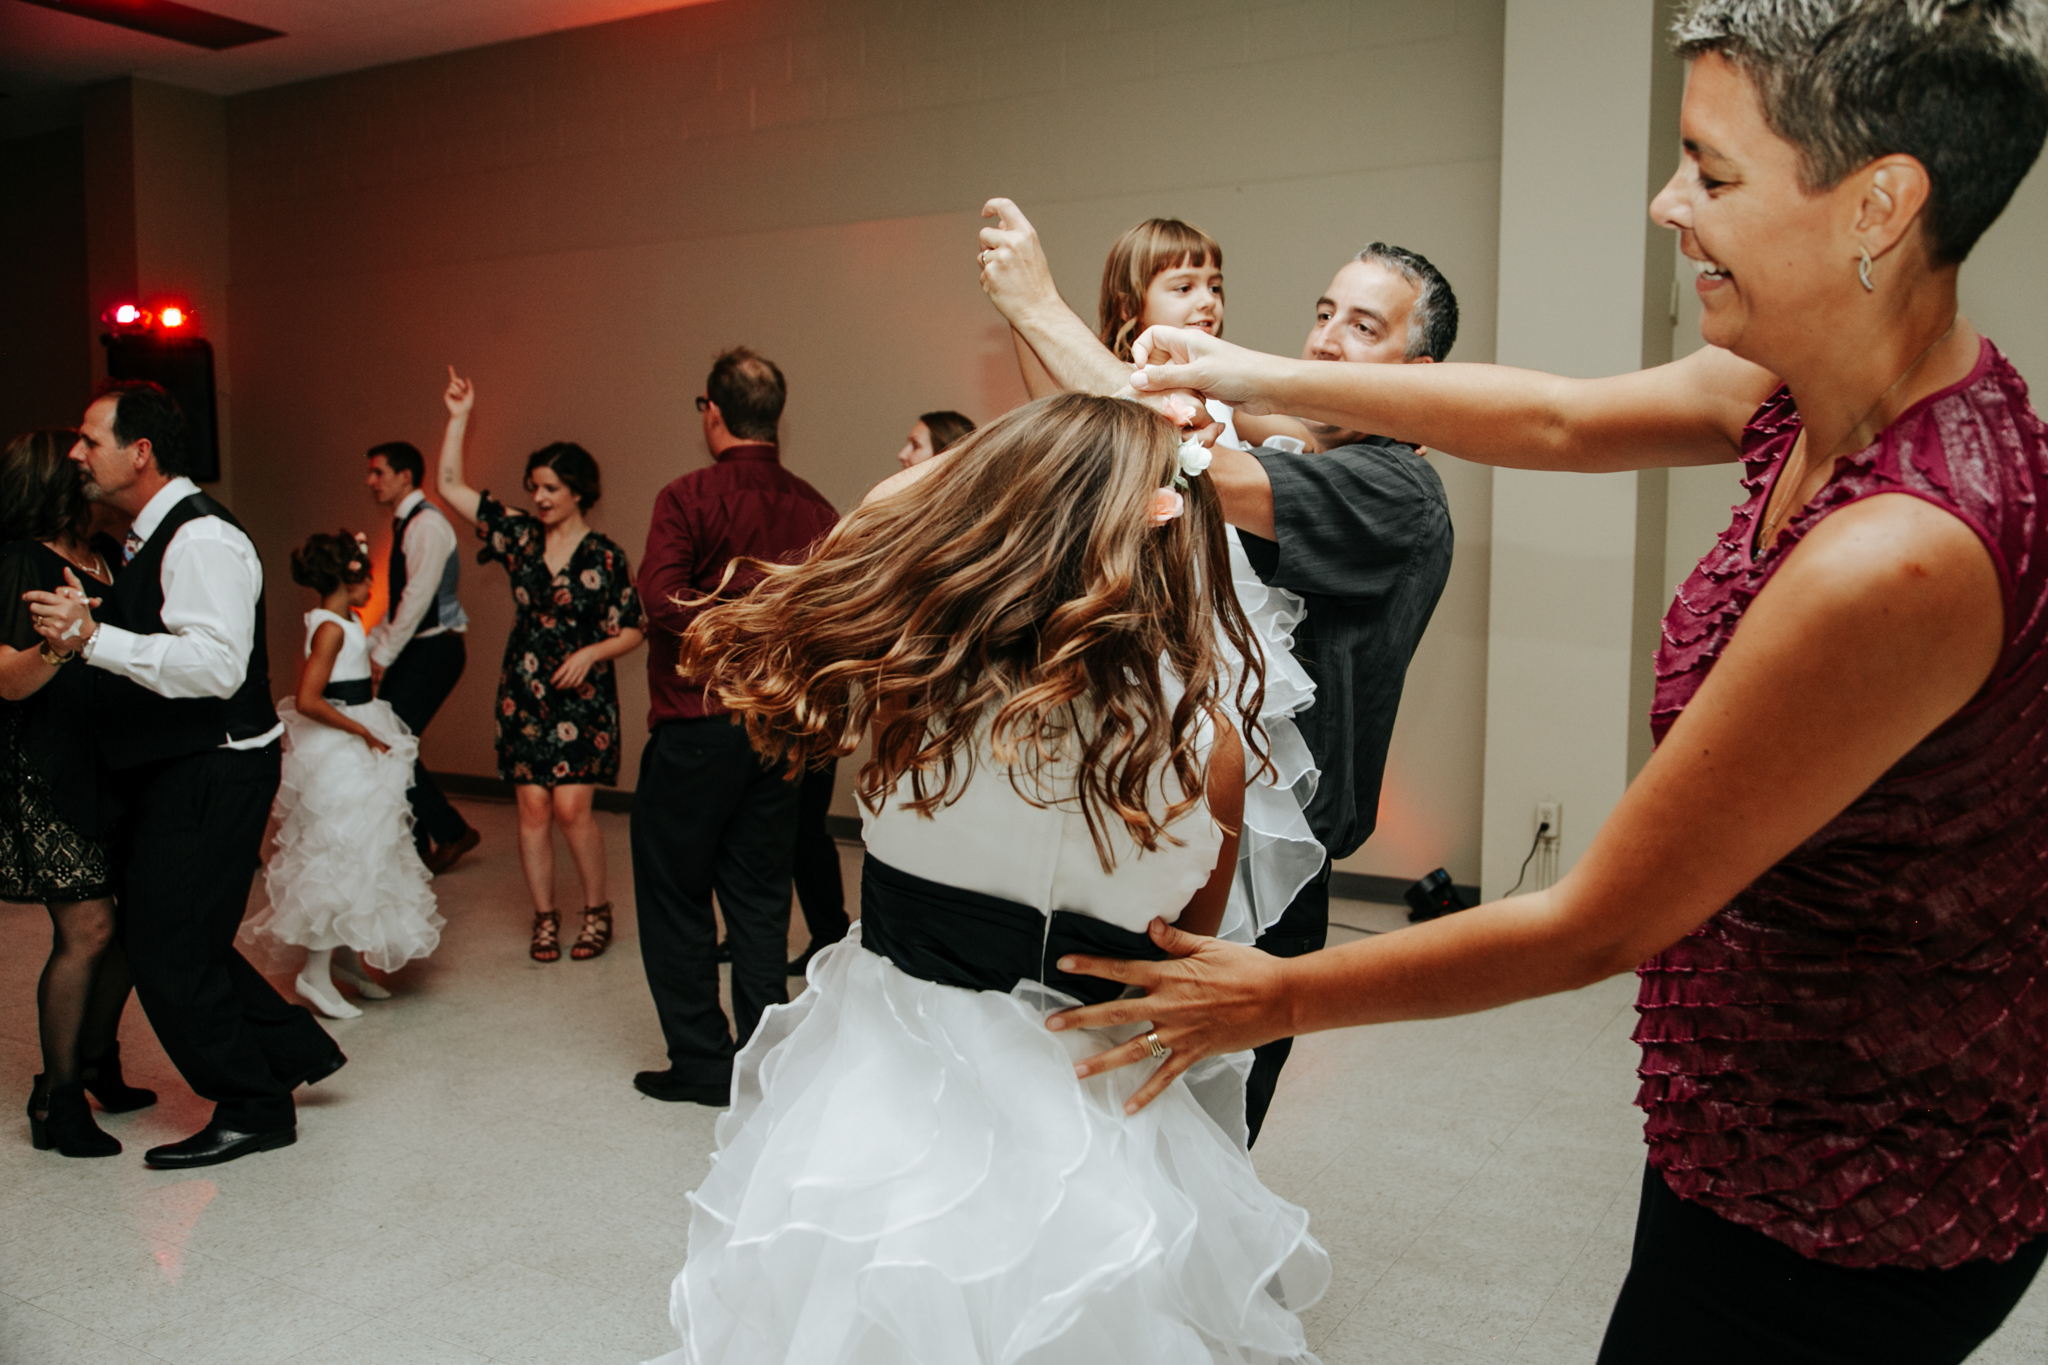 lethbridge-photographer-love-and-be-loved-photography-rocky-mountain-turf-club-reception-katie-kelli-wedding-picture-image-photo-436.jpg